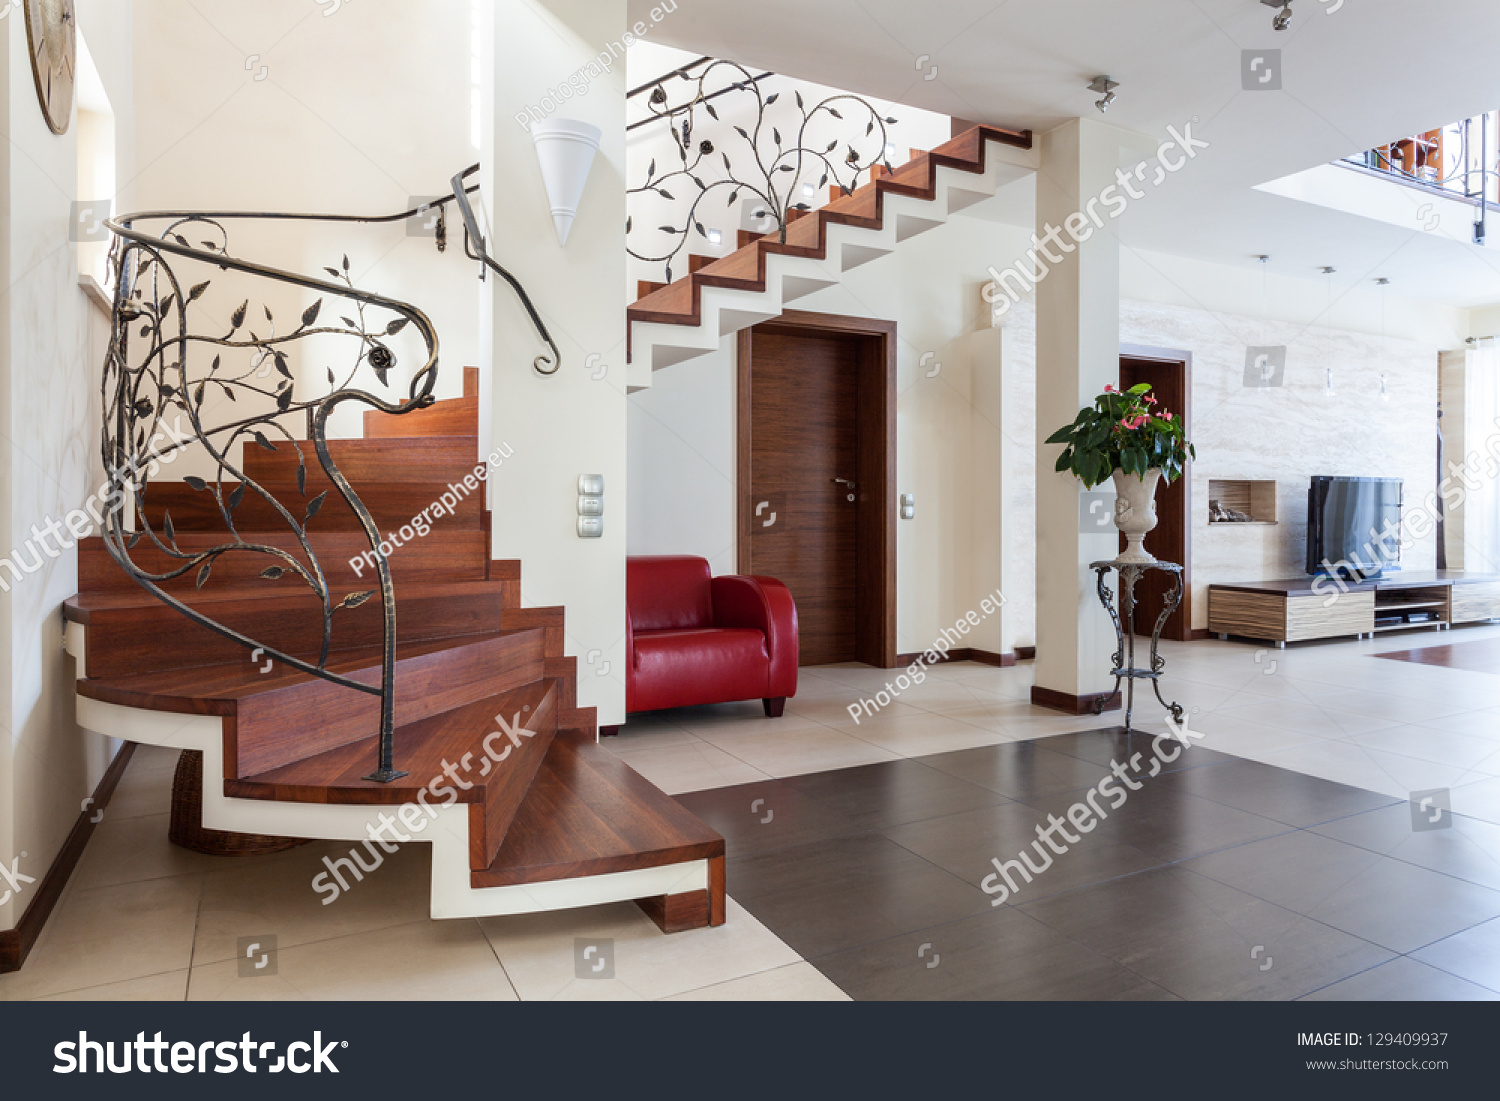 Classy House Living Room Interior With Classic Staircase Stock Photo